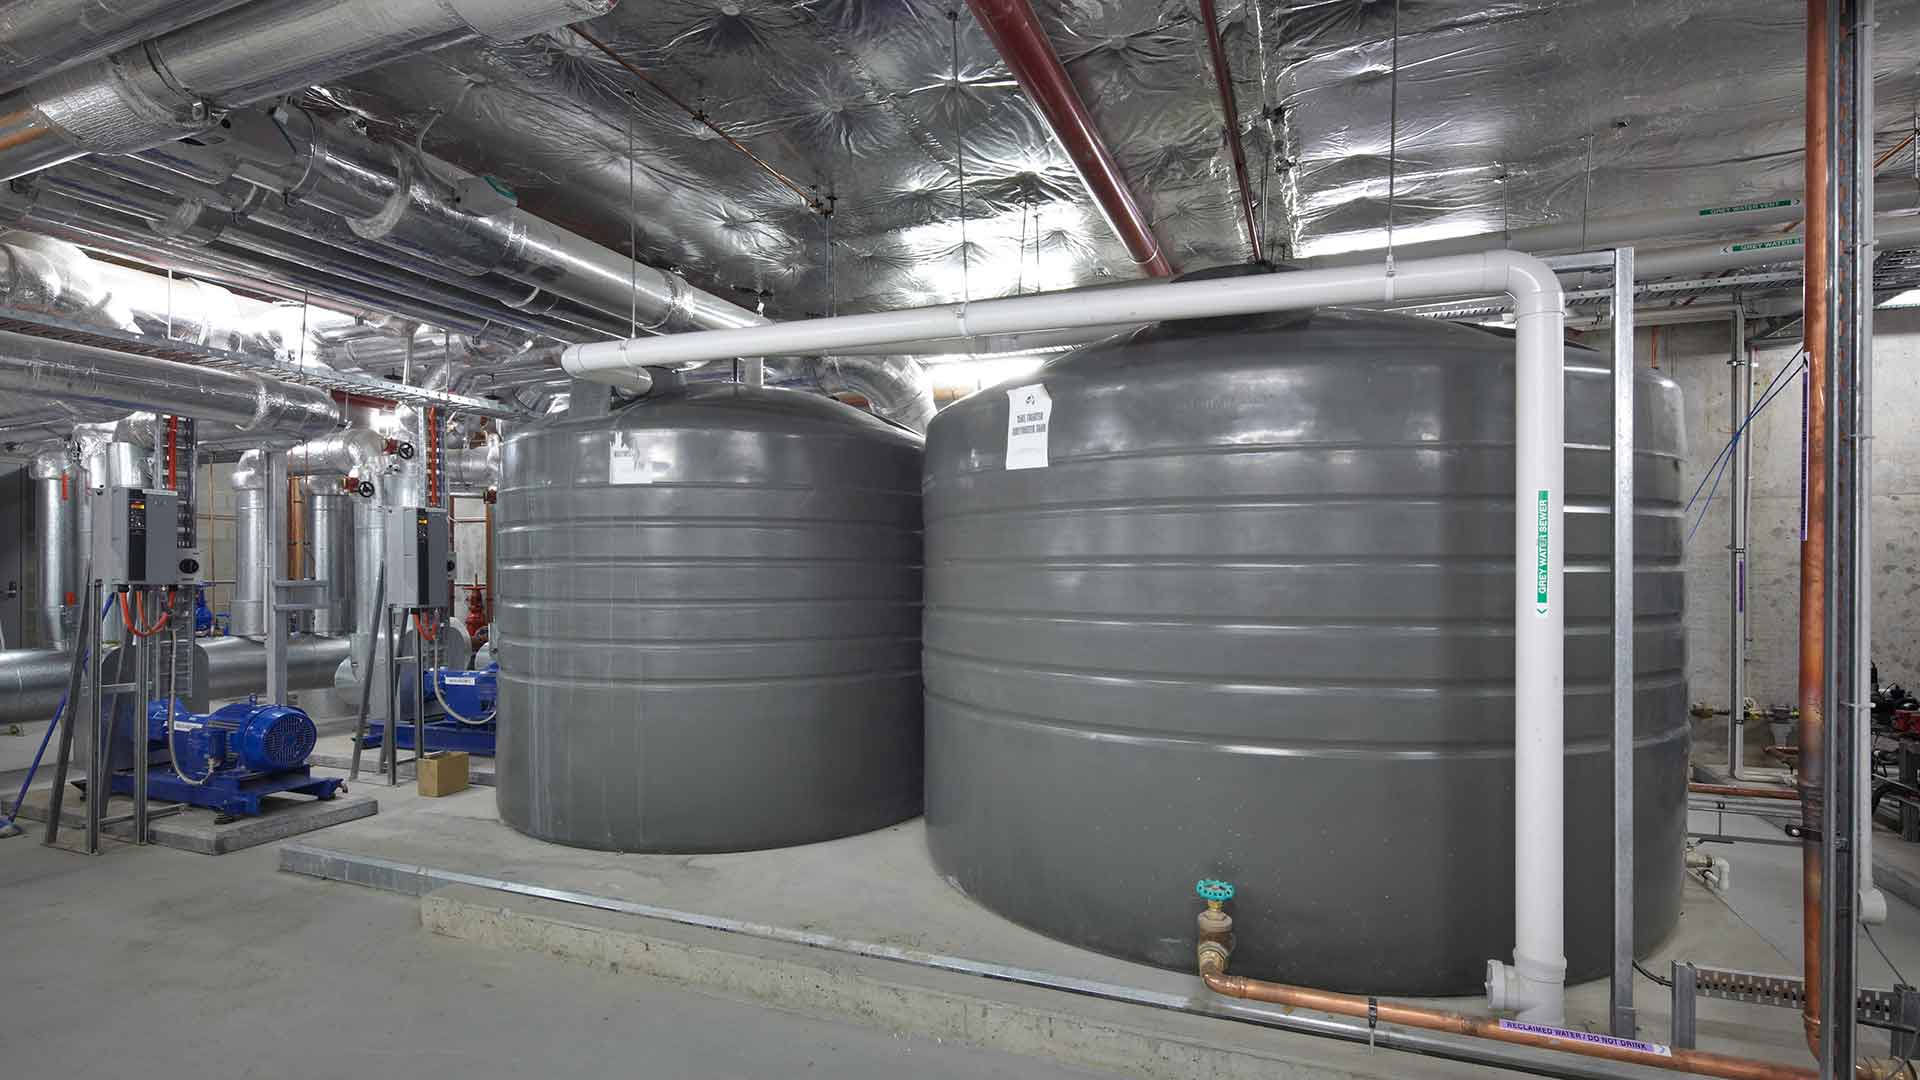 Two grey water tanks